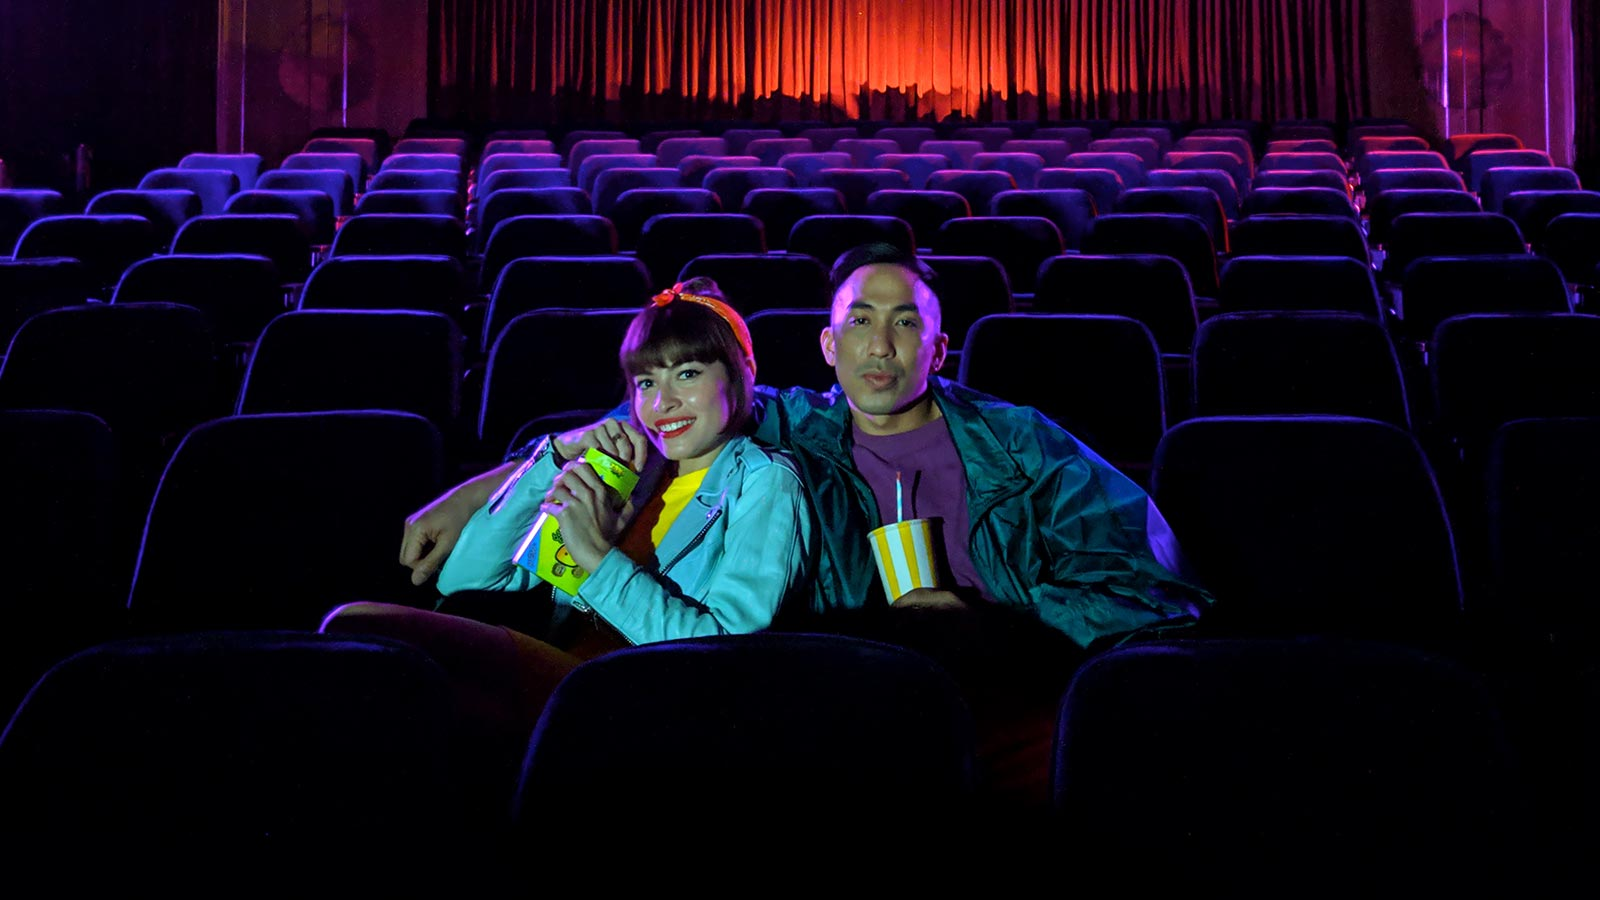 Woman and man sitting looking relaxed in a dark room surrounded by rows of seats